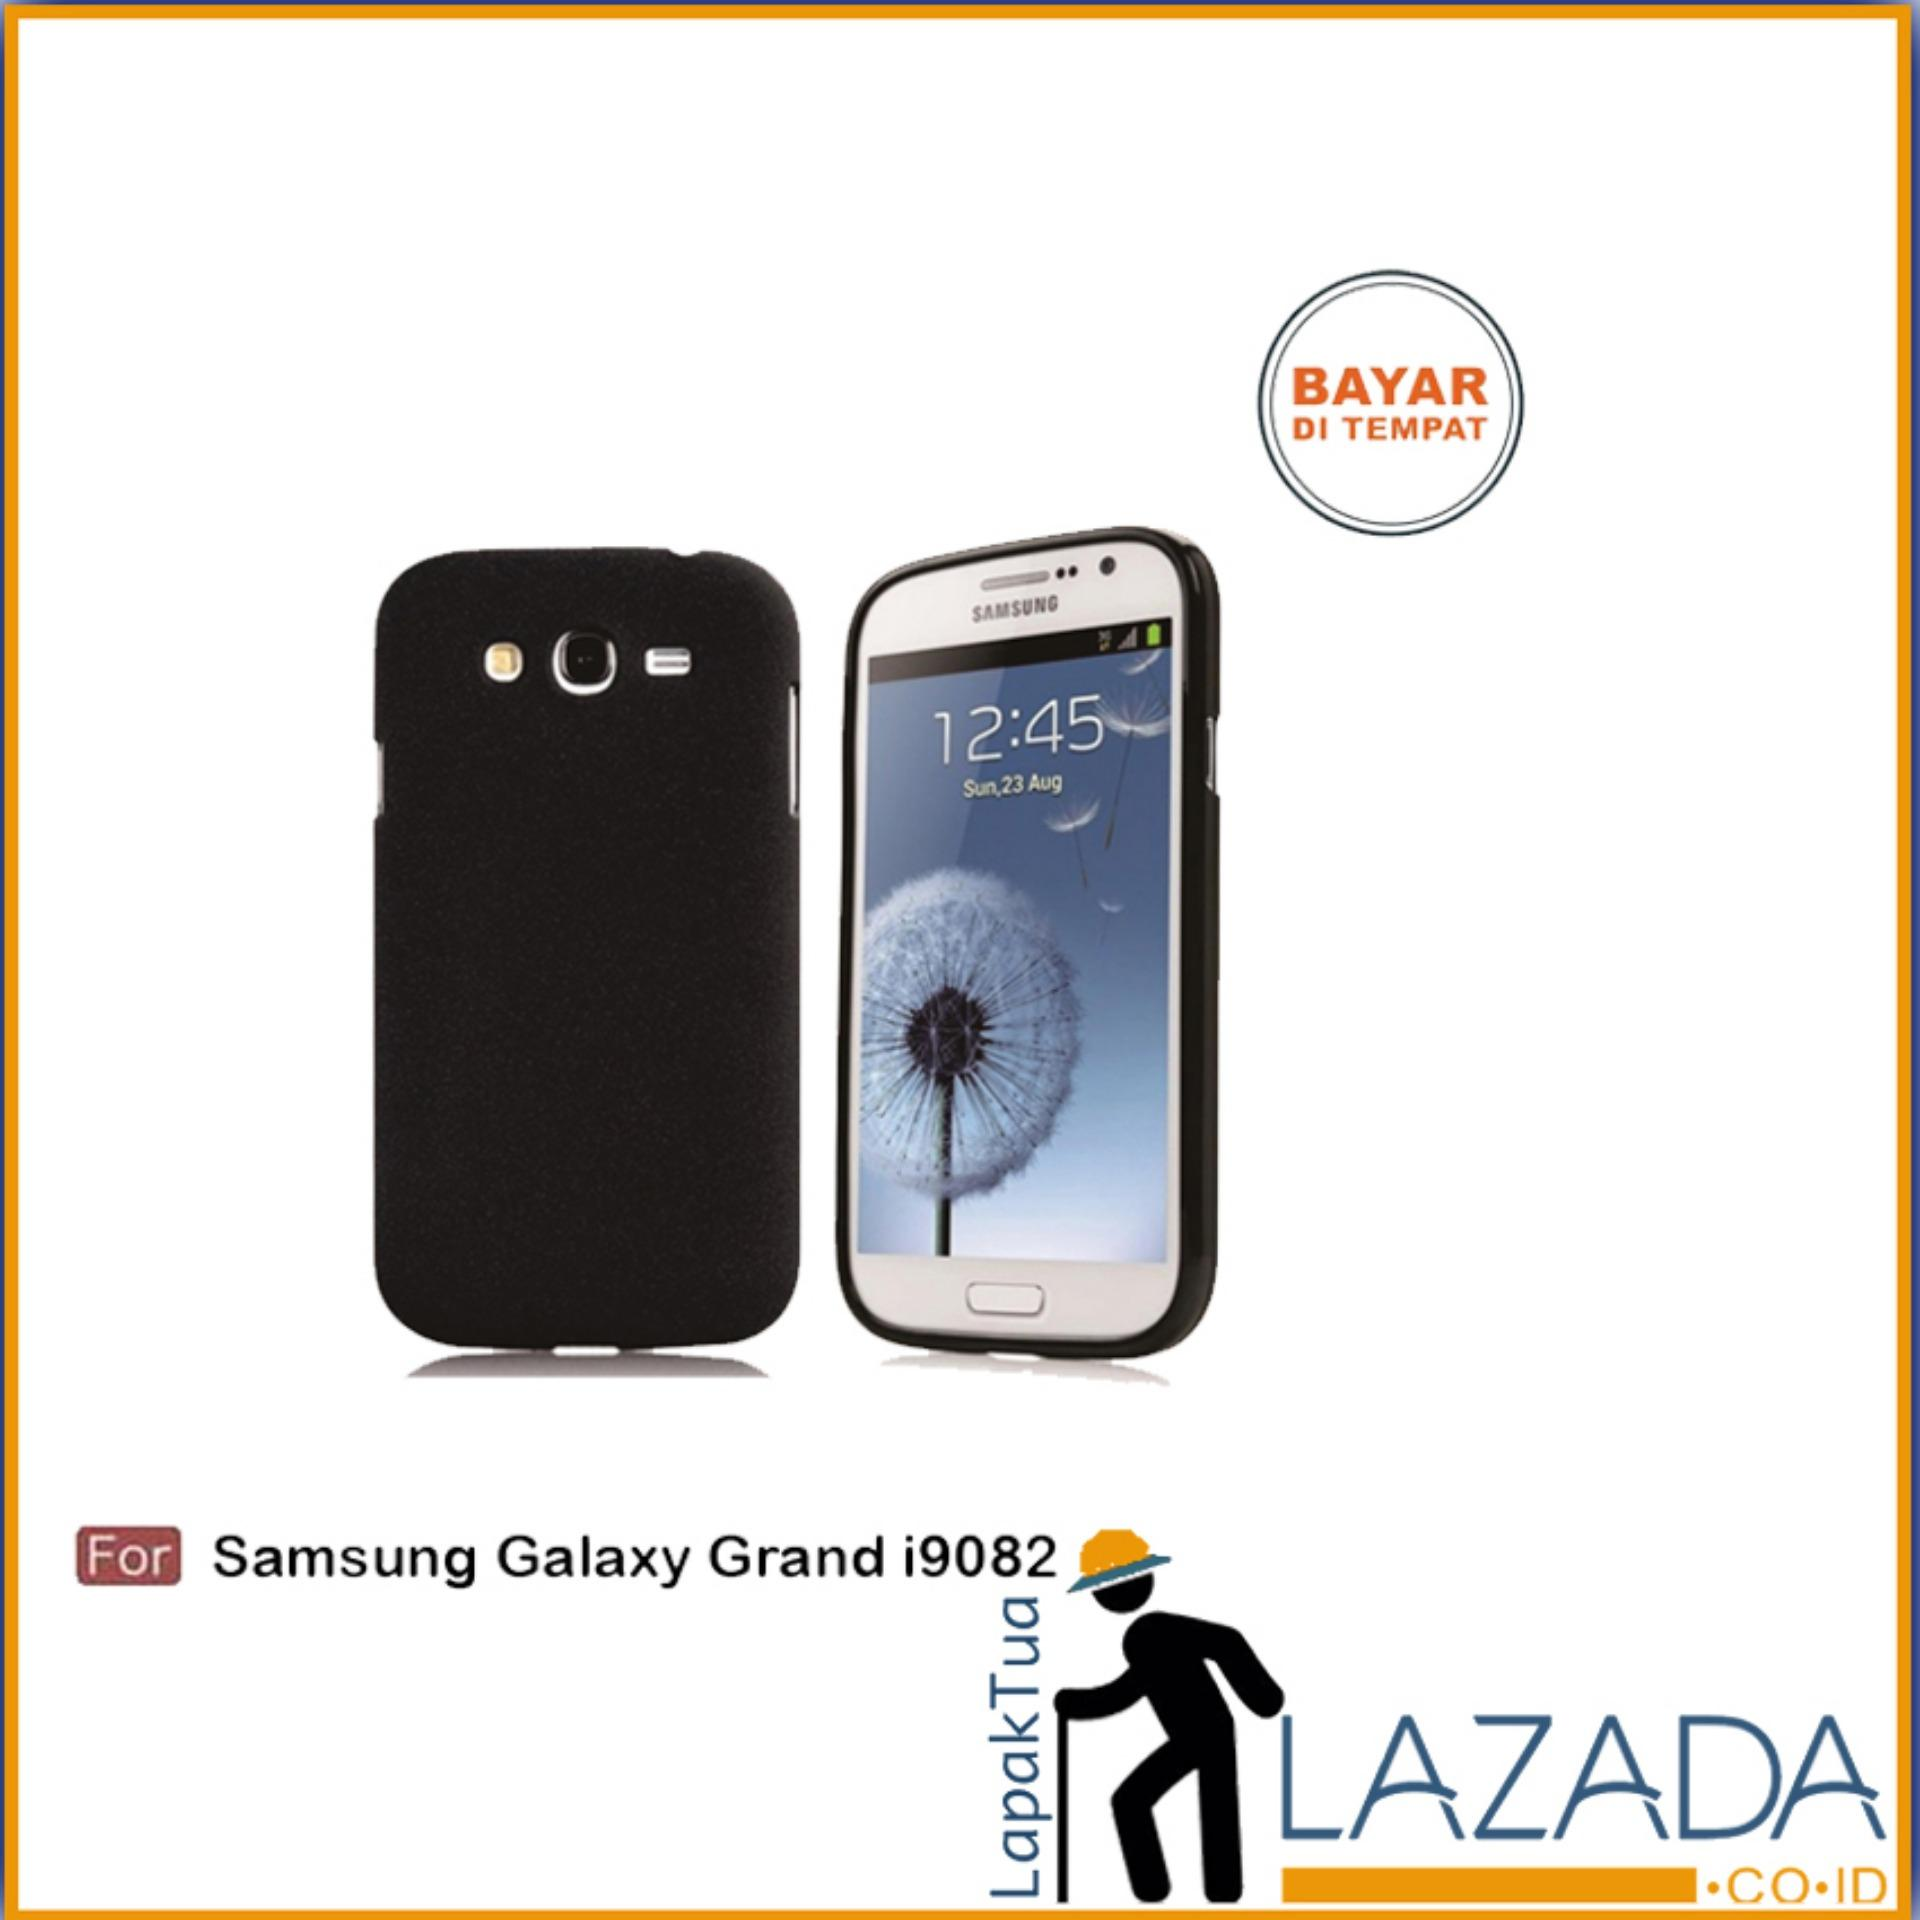 Lapak Case - Softcase Midnight Black Matte Case Ultraslim Baby Skin Untuk Samsung Galaxy Grand Duos / i9082 /Grand 1 / Grand Z